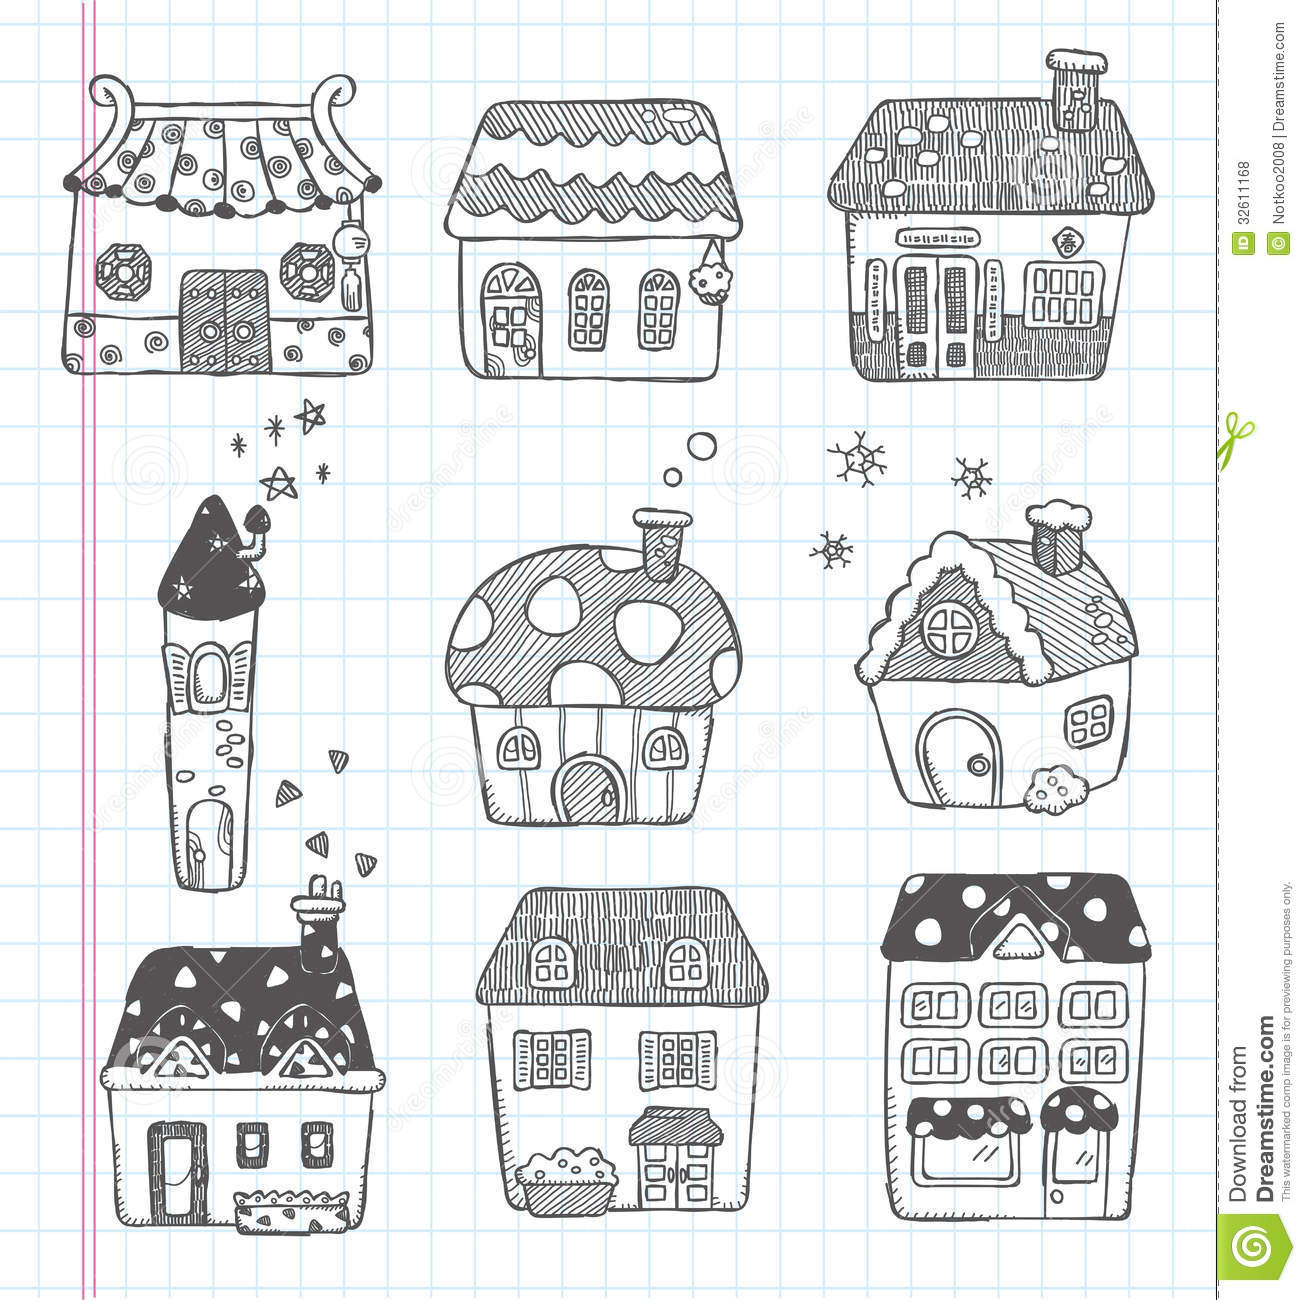 Royalty Free Stock Photos Doodle House Icon Cartoon Vector Illustration Image32611168 together with Top 18 Photos Ideas For Room Floor Plan Template furthermore Poulailler De Jardin also Designing A Sustainable Home further 371476669237887636. on cottage plans